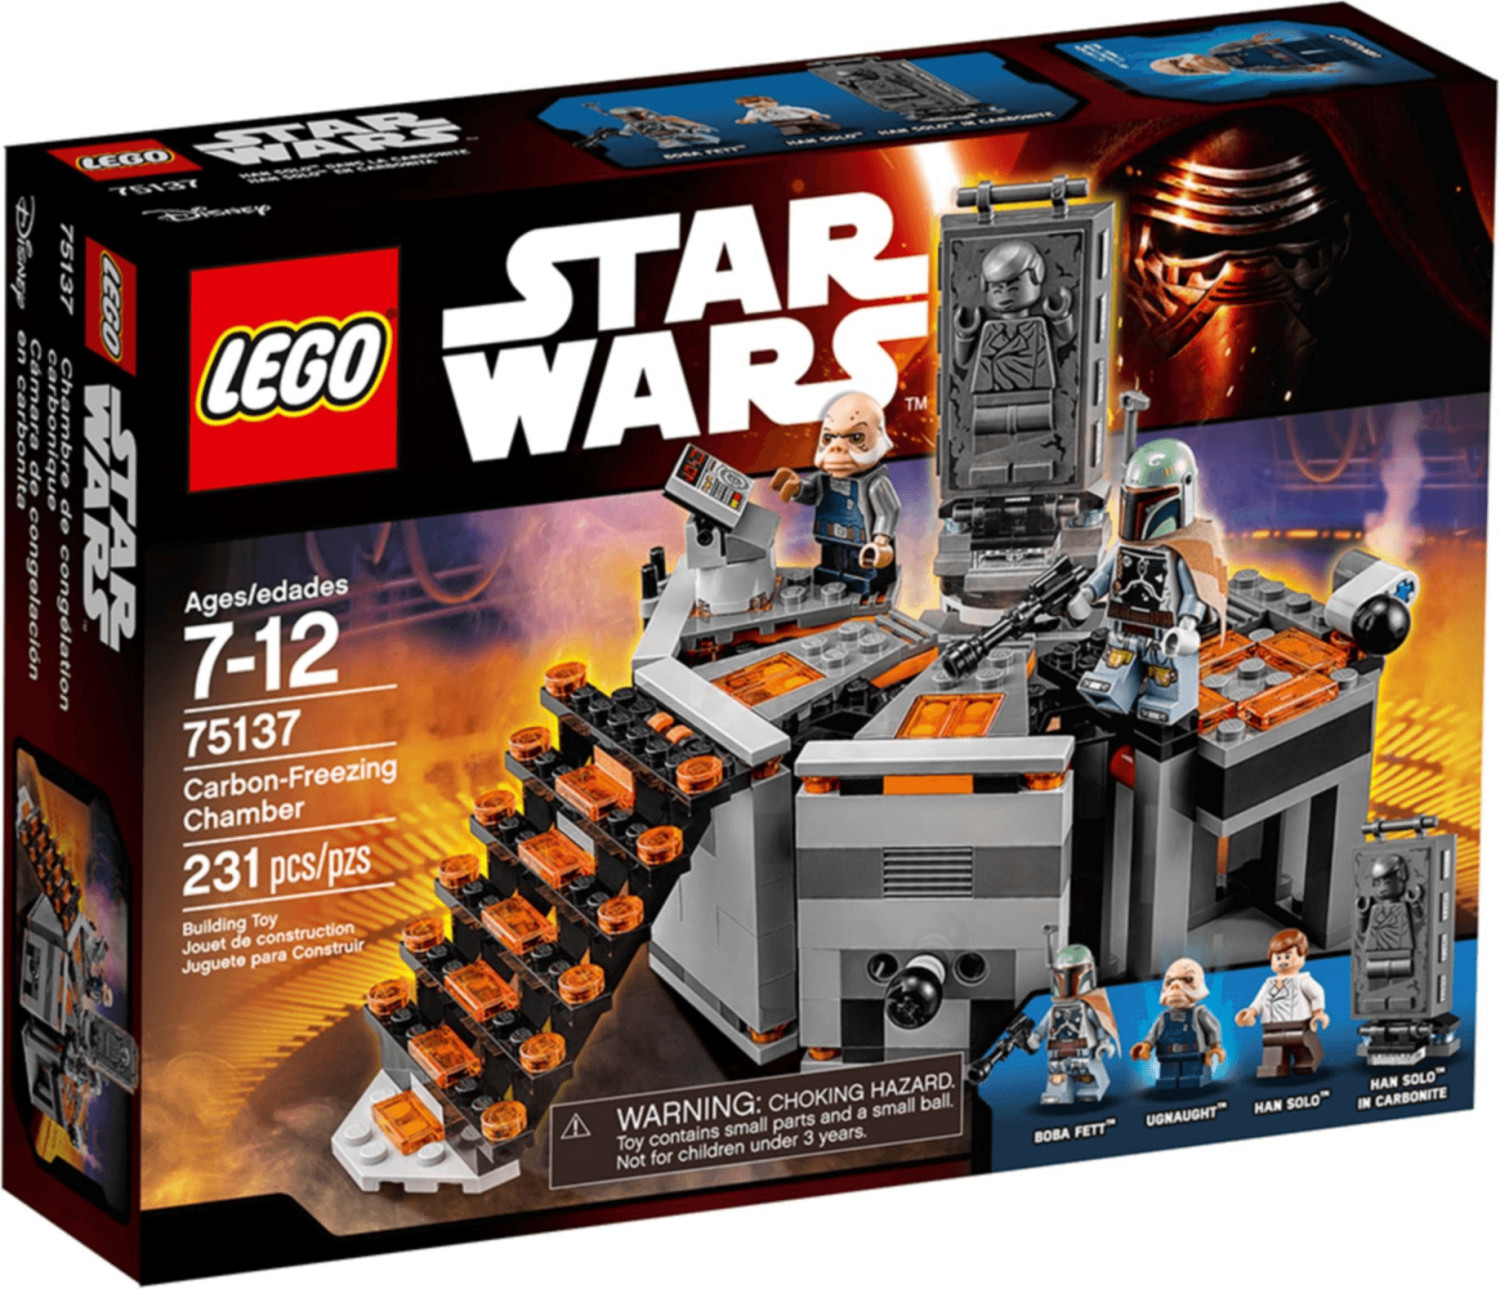 LEGO Star Wars - Carbon Freezing Chamber (75137)